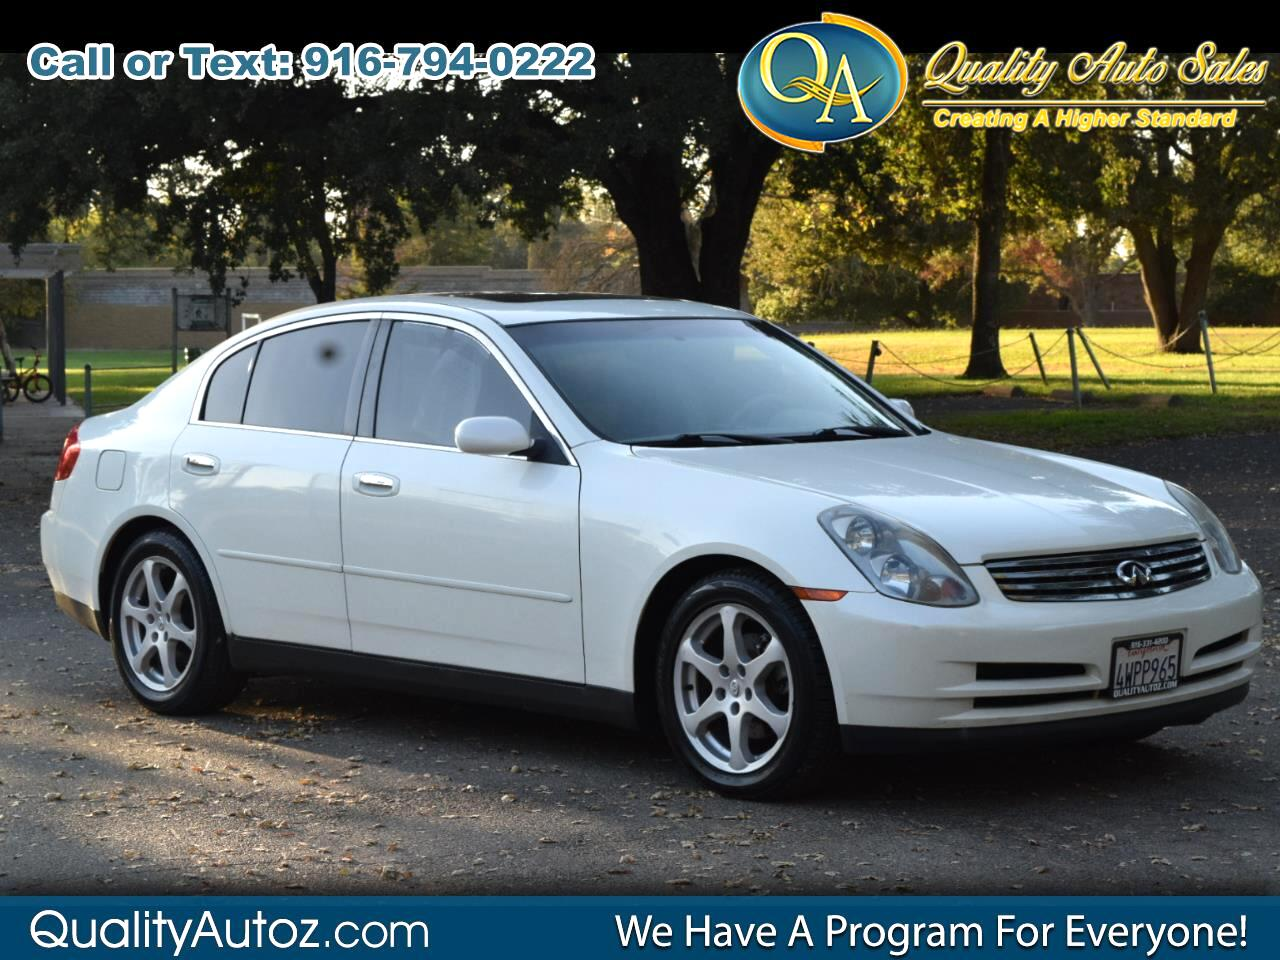 Cars For Sale Sacramento >> Used Cars For Sale Sacramento Ca 95841 Quality Auto Sales